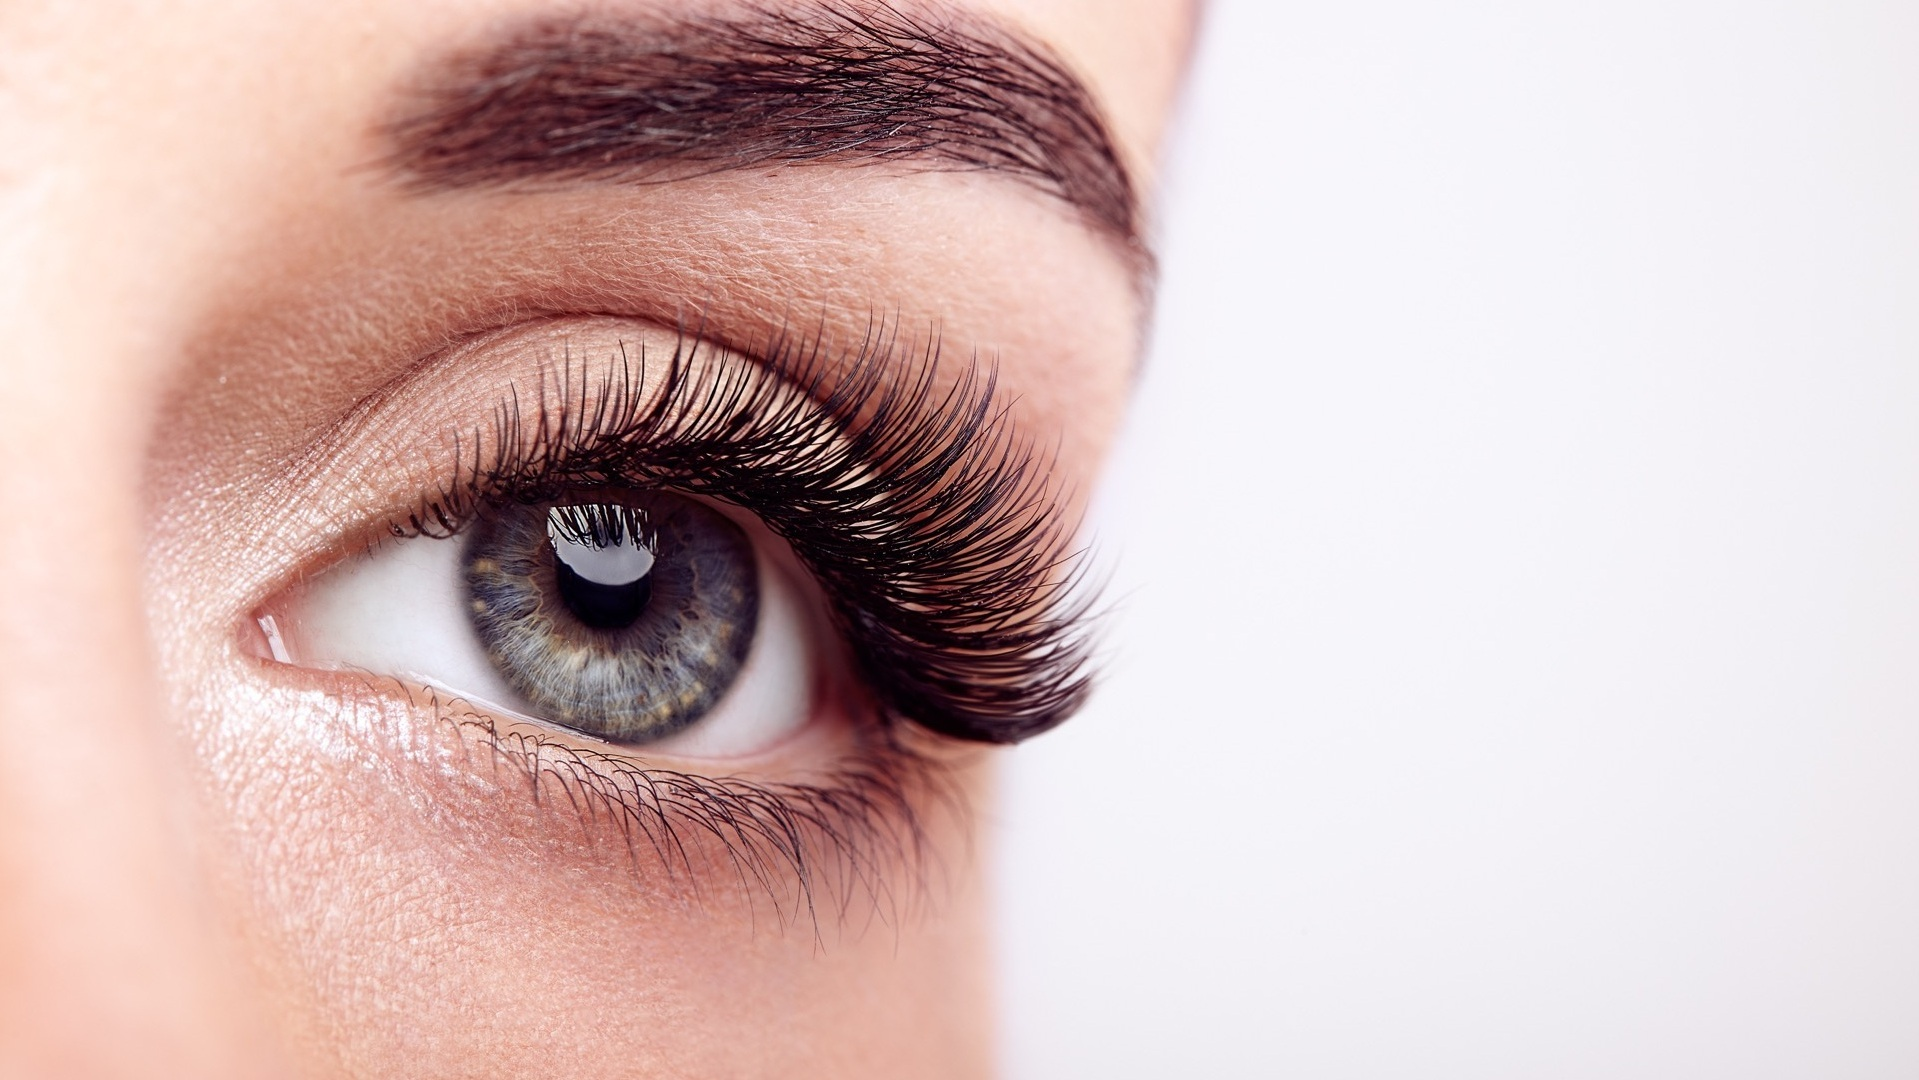 Classic Lash Extensions - A perfectly tailored and customized design is based on each client's eye shape and personal style. During the appointment we will determine the length, curl and look you would like to achieve.